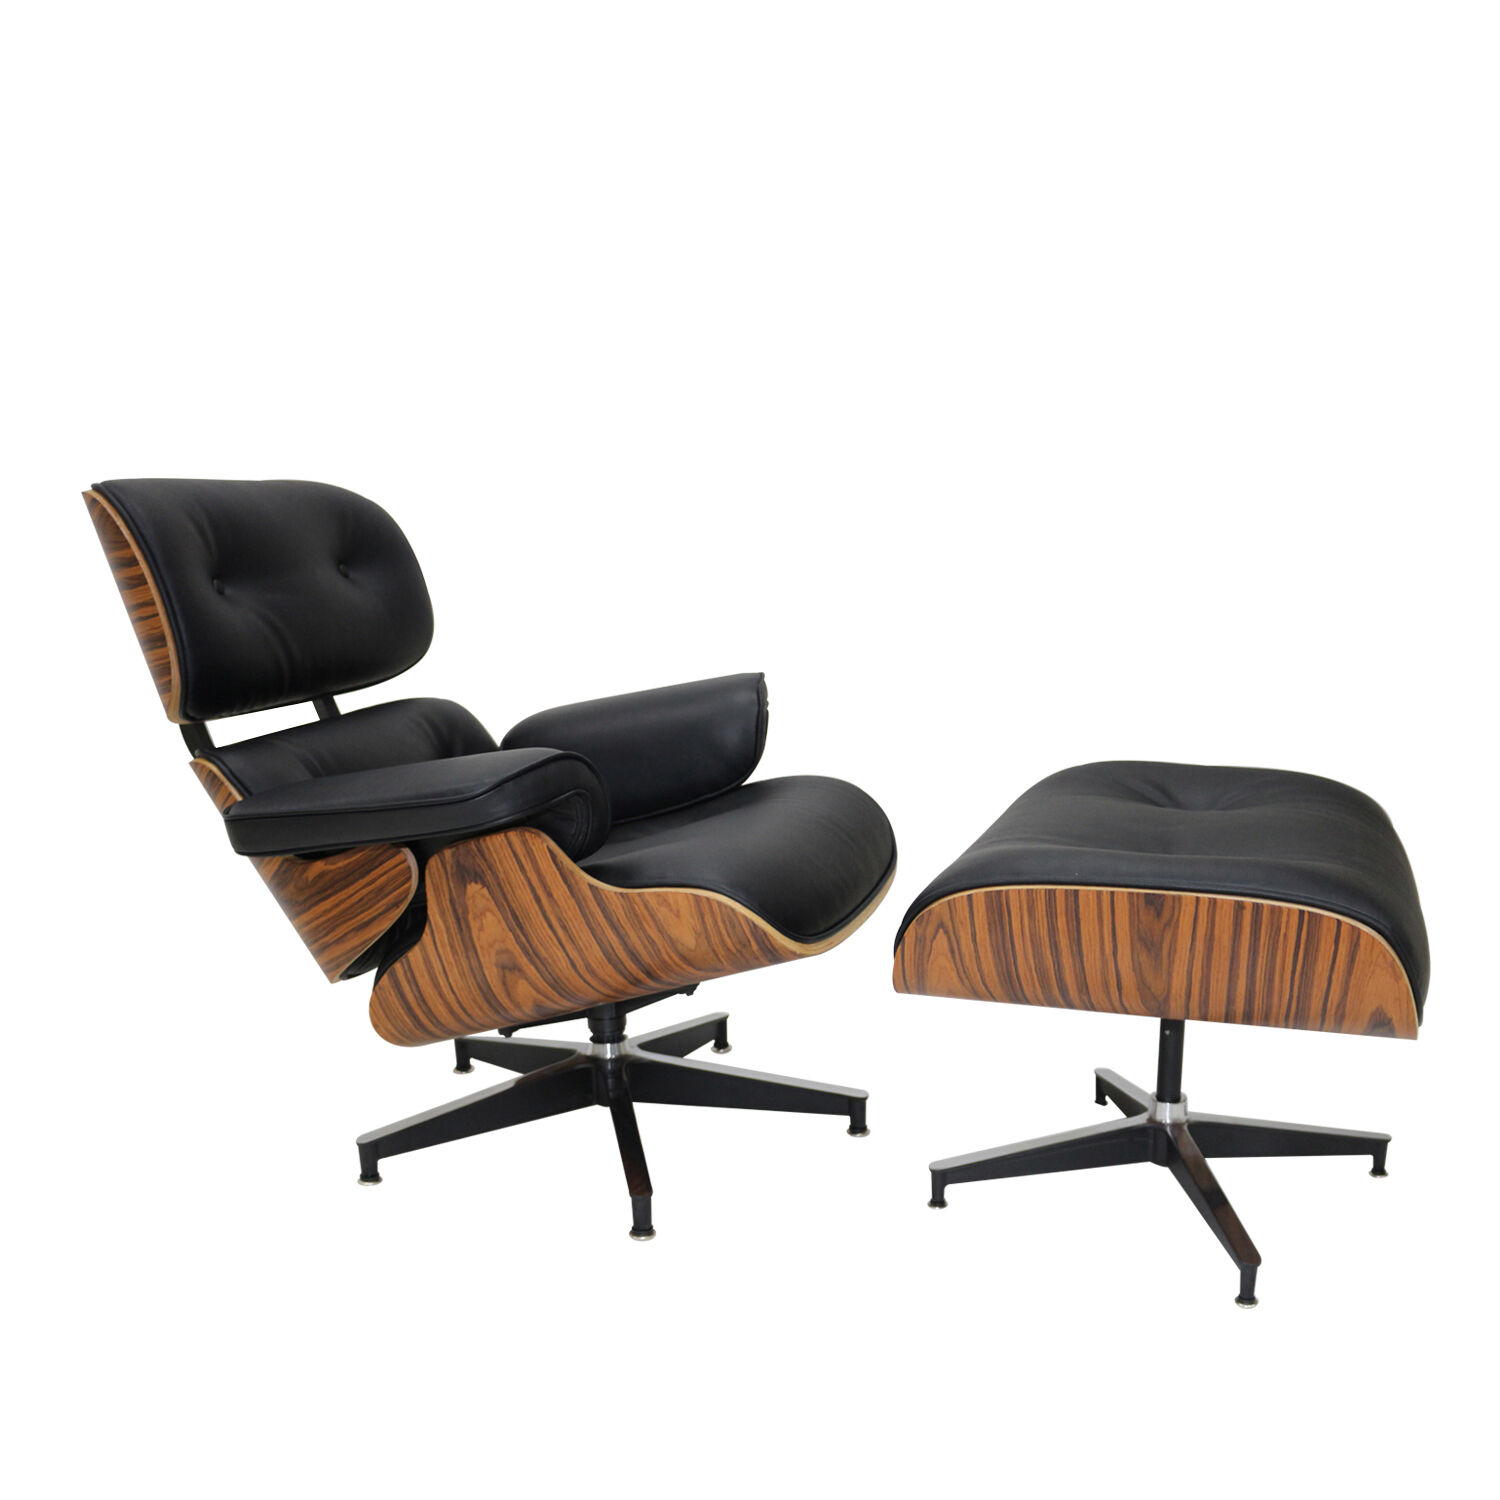 Charles Eames Rosewood Lounge Chair And Ottoman In Black Genuine Leather Replica